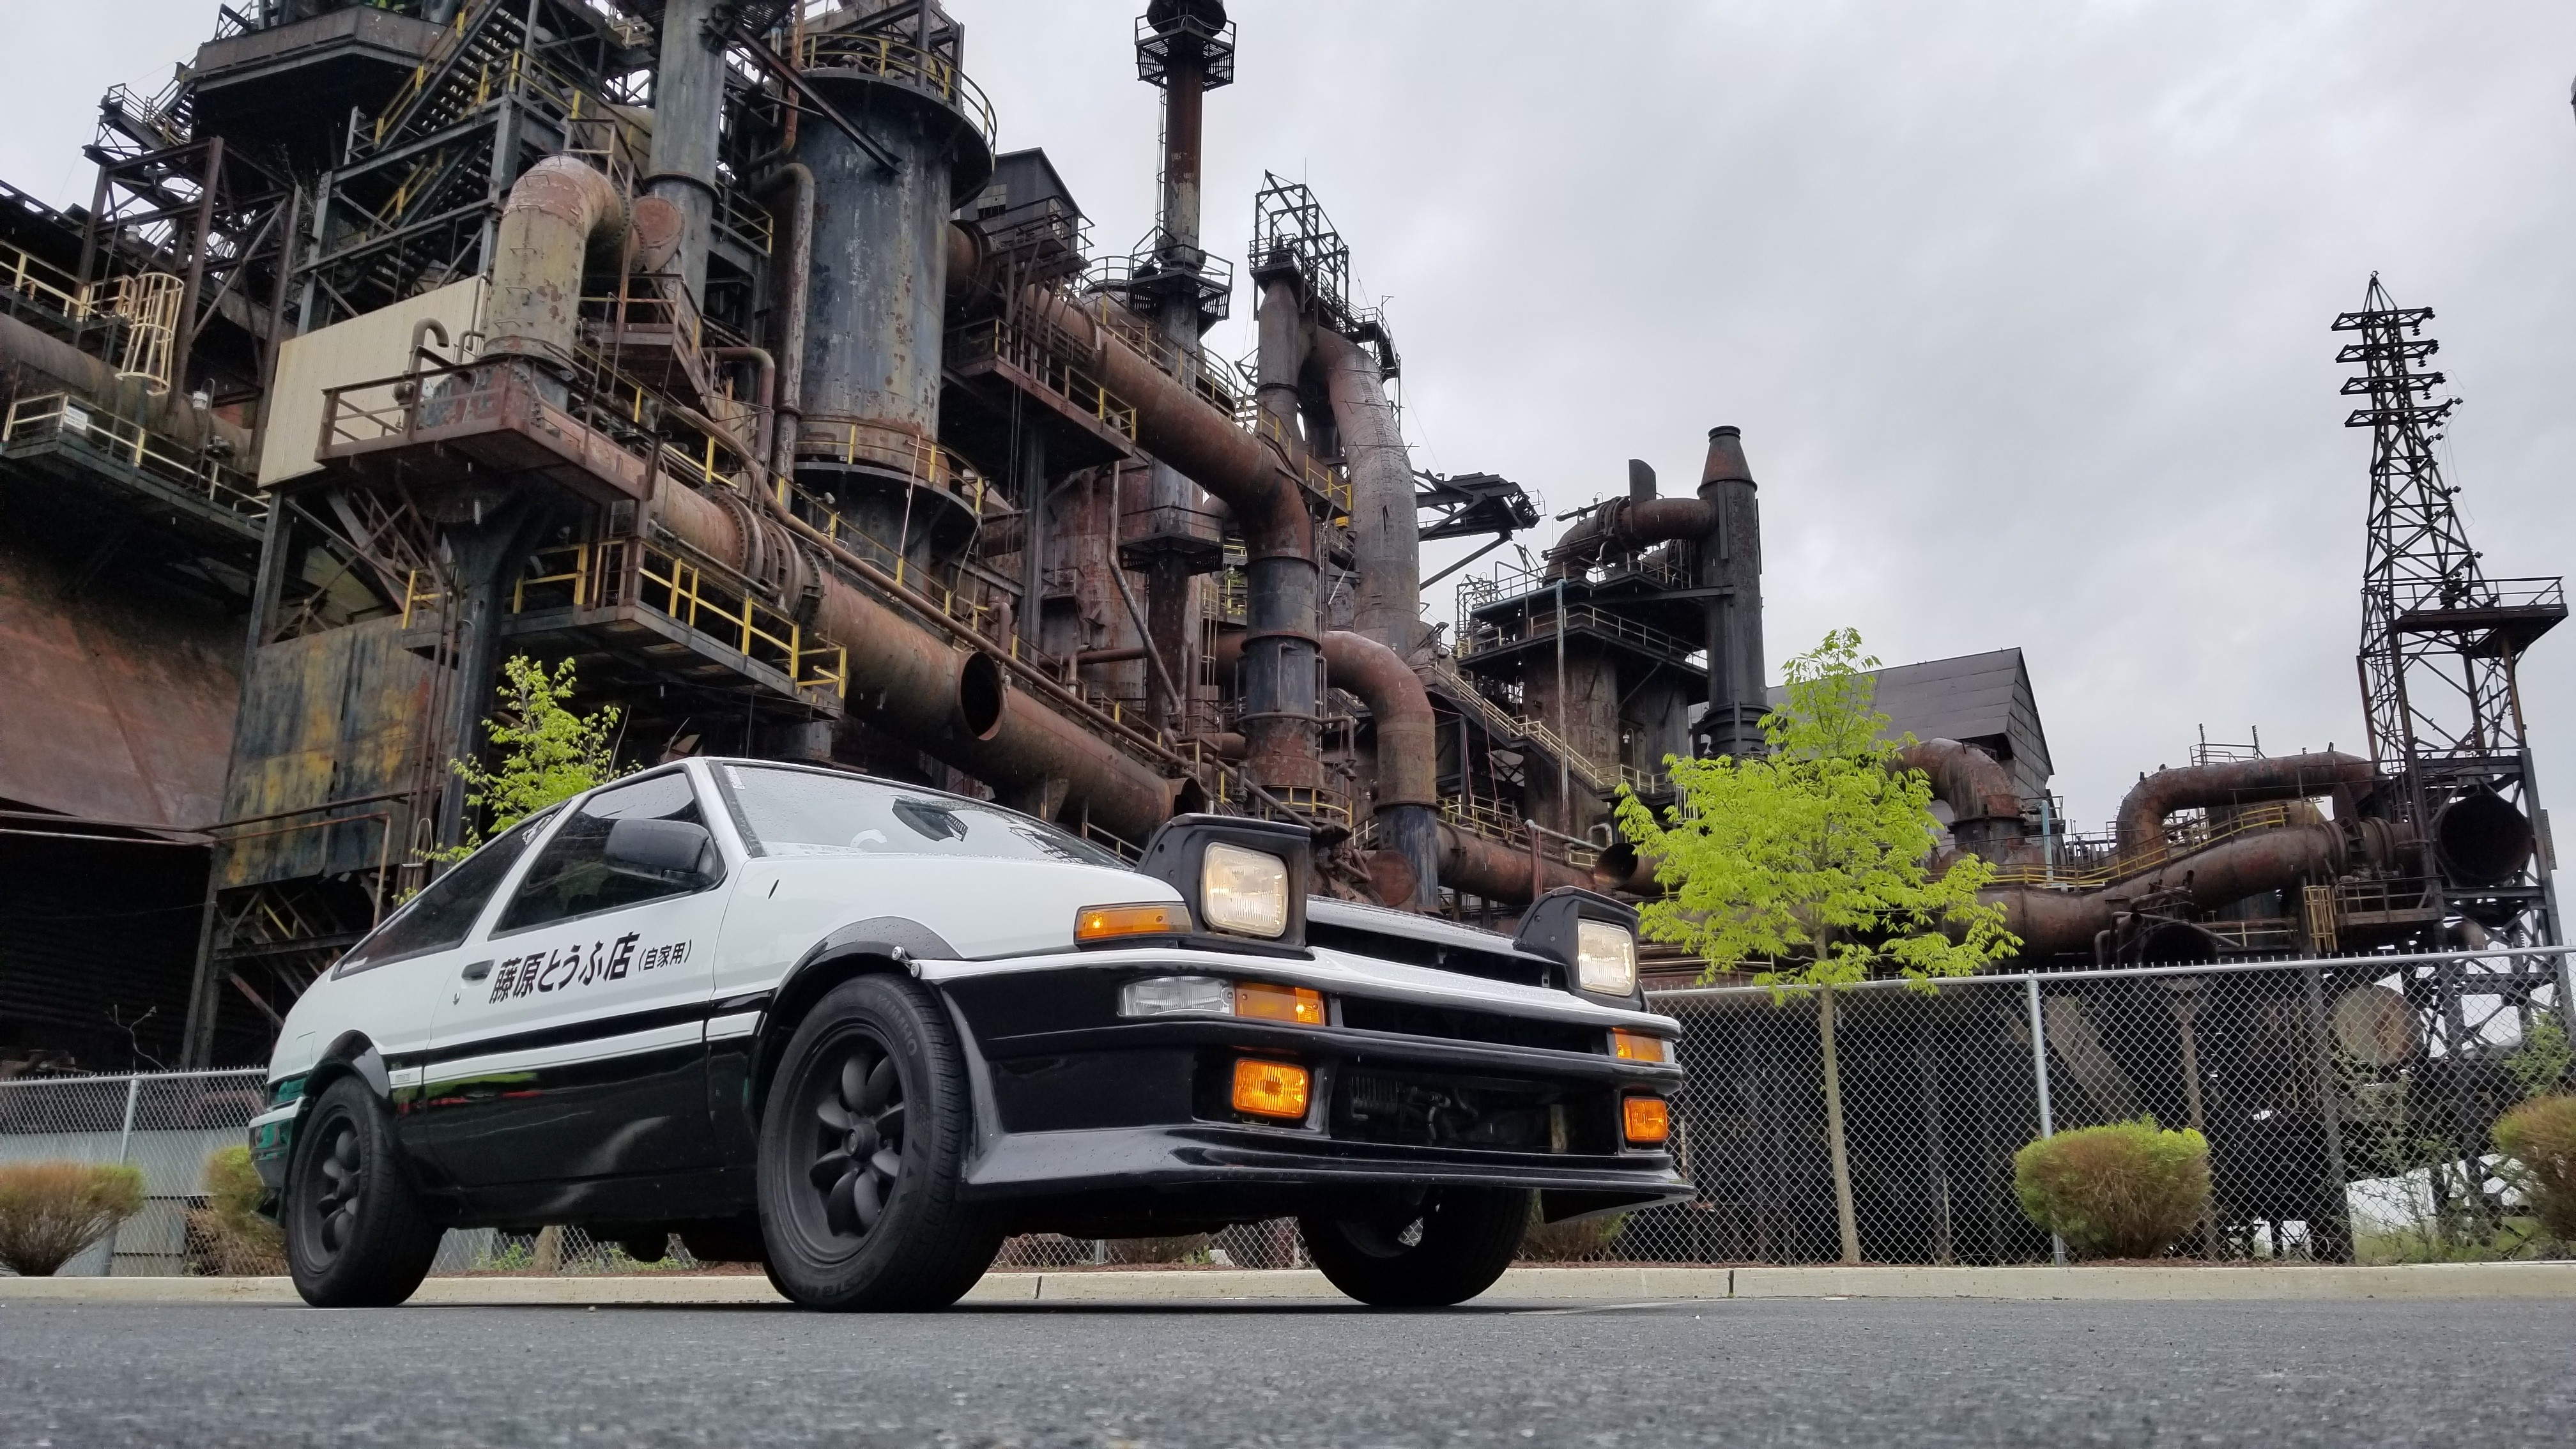 SaikouCon 2019 Featured Guest AE86 Sprinter Truen Fantasy Car